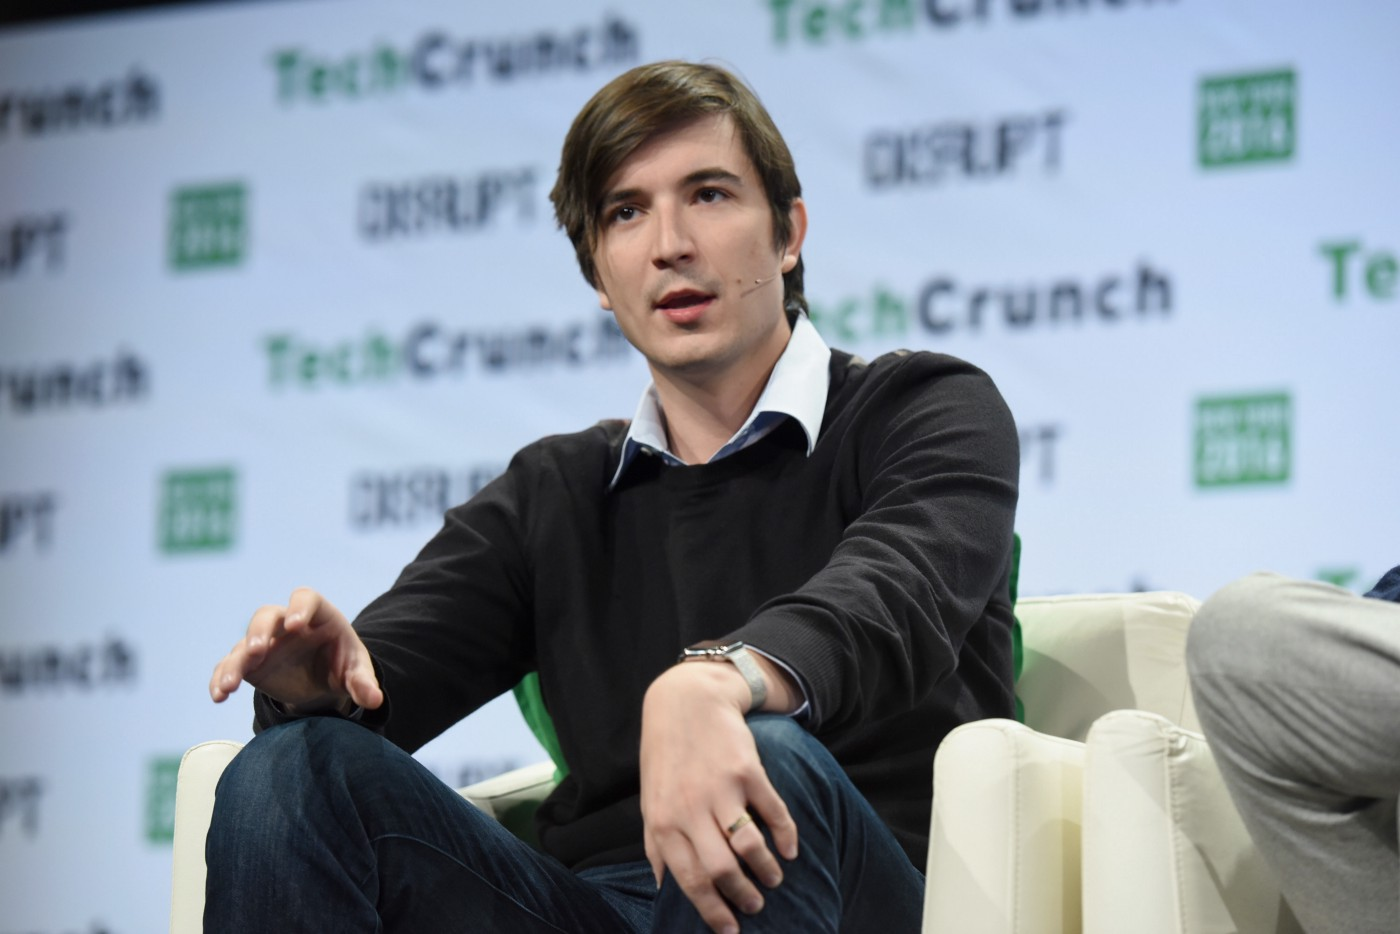 Co-founder and co-CEO of Robinhood Vladimir Tenev speaks onstage during TechCrunch Disrupt NY 2016